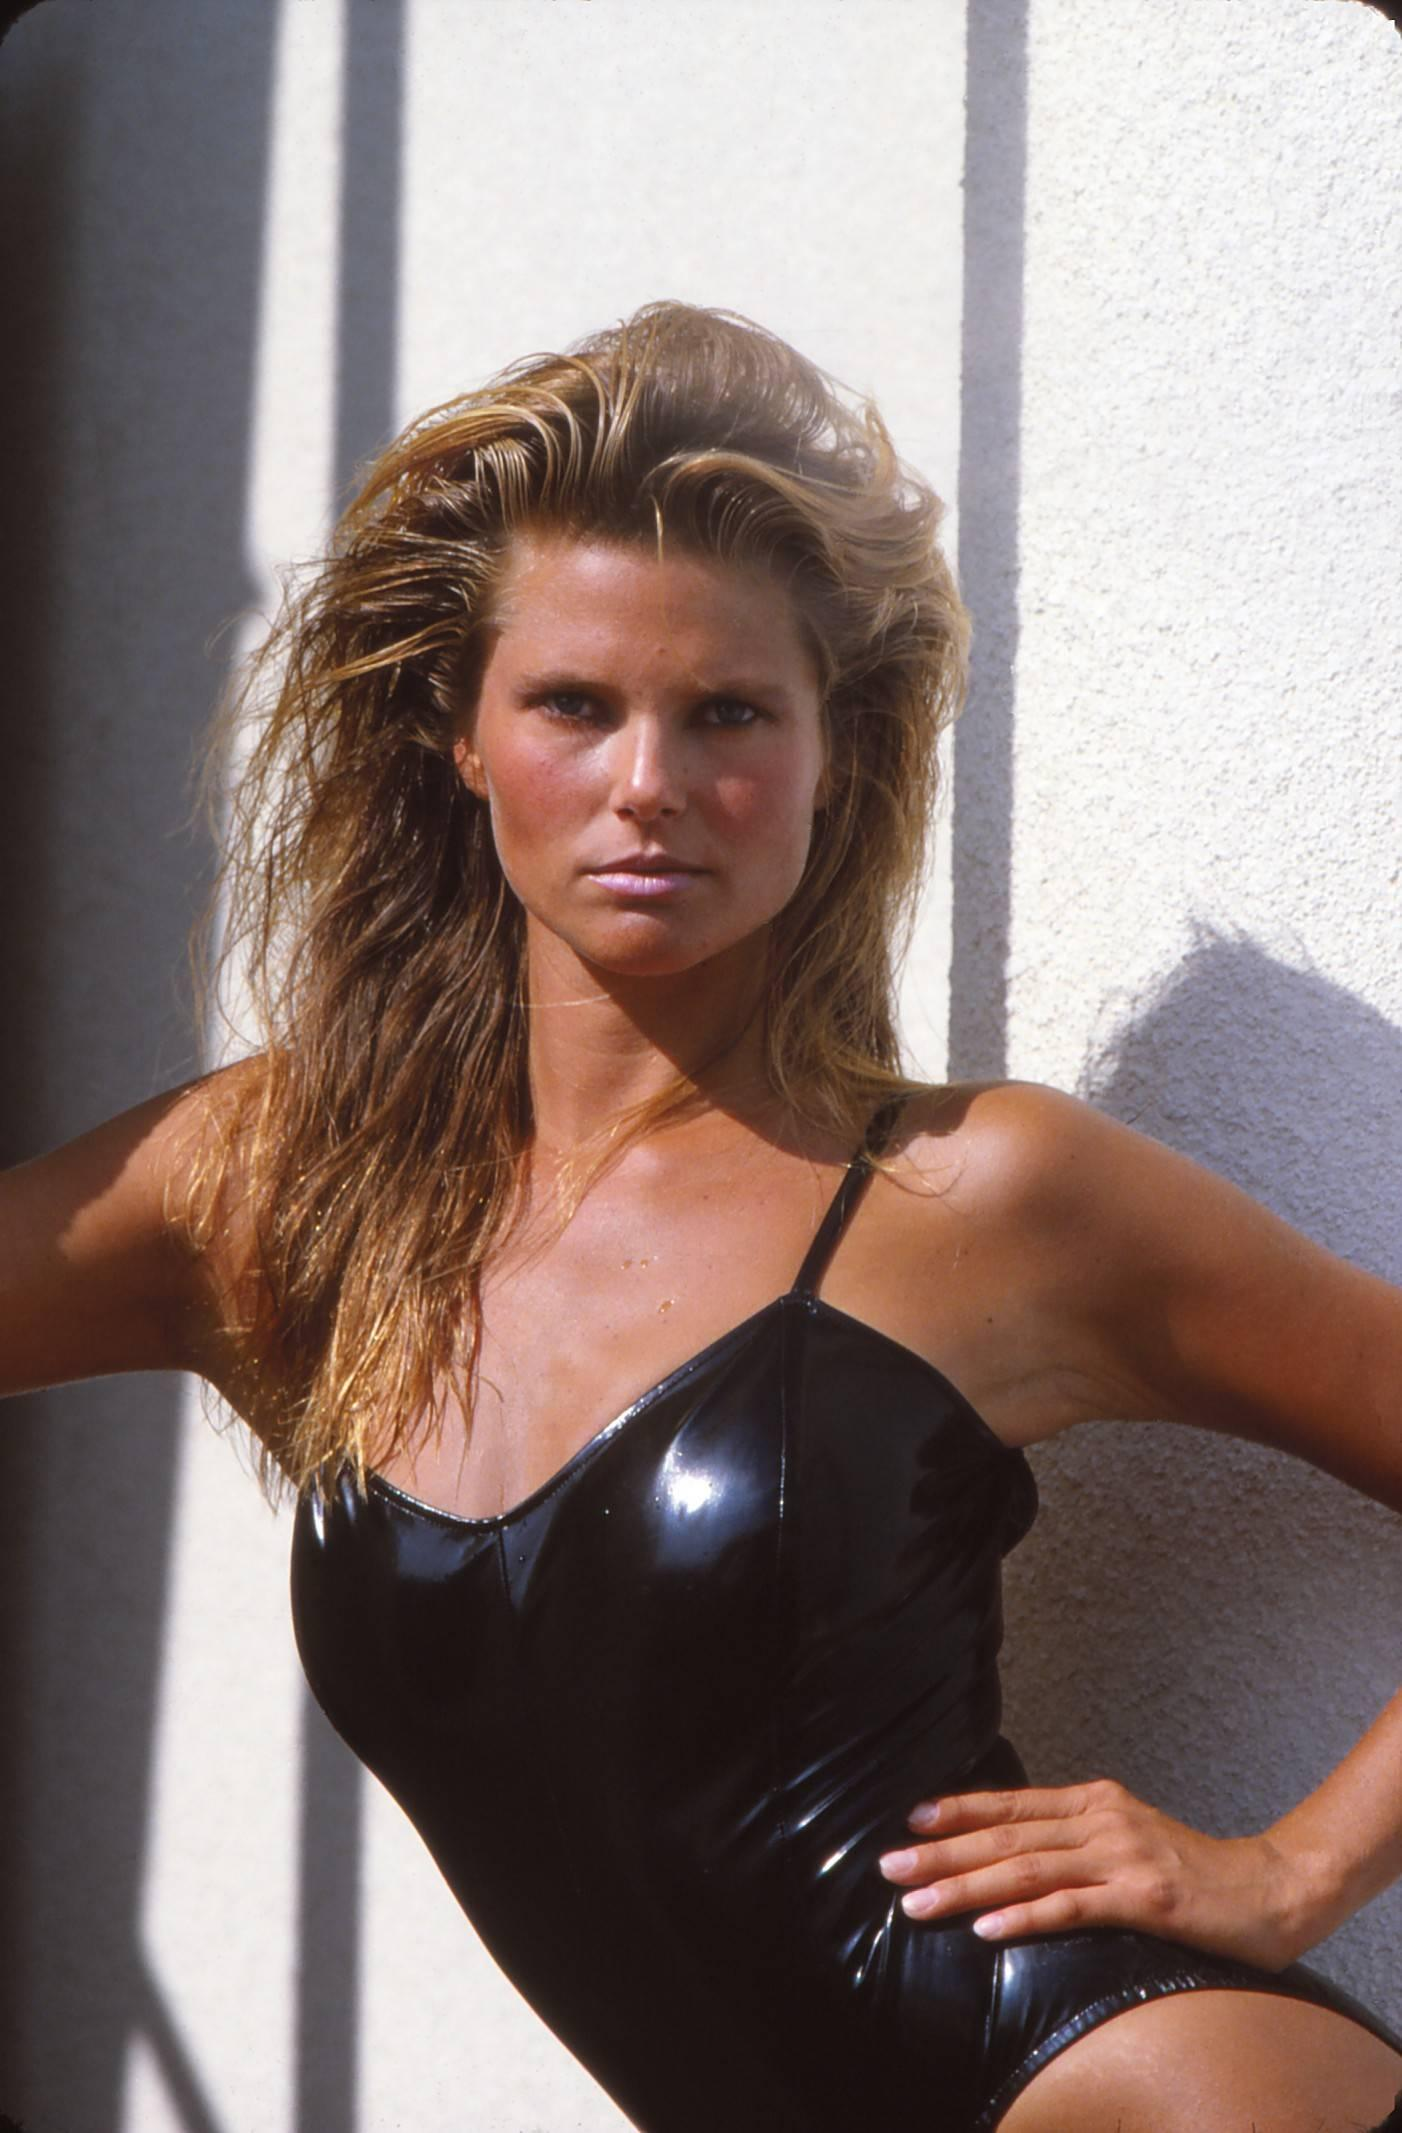 Photos Christie Brinkley nudes (34 photos), Tits, Leaked, Twitter, see through 2018